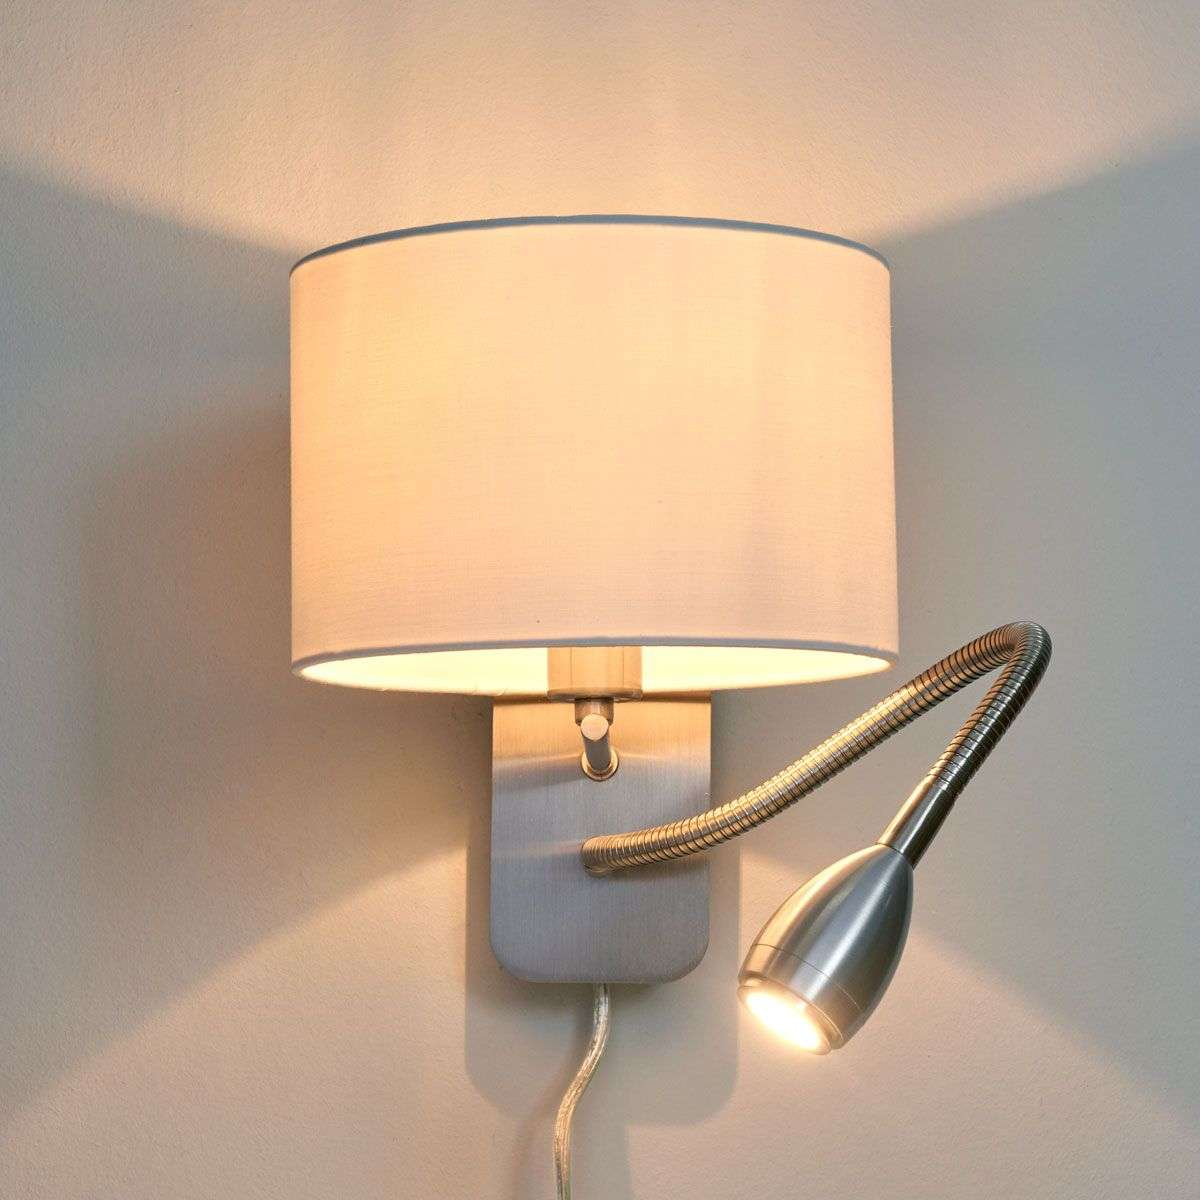 Risa wall light with reading light lights risa wall light with reading light 9004558 31 mozeypictures Gallery